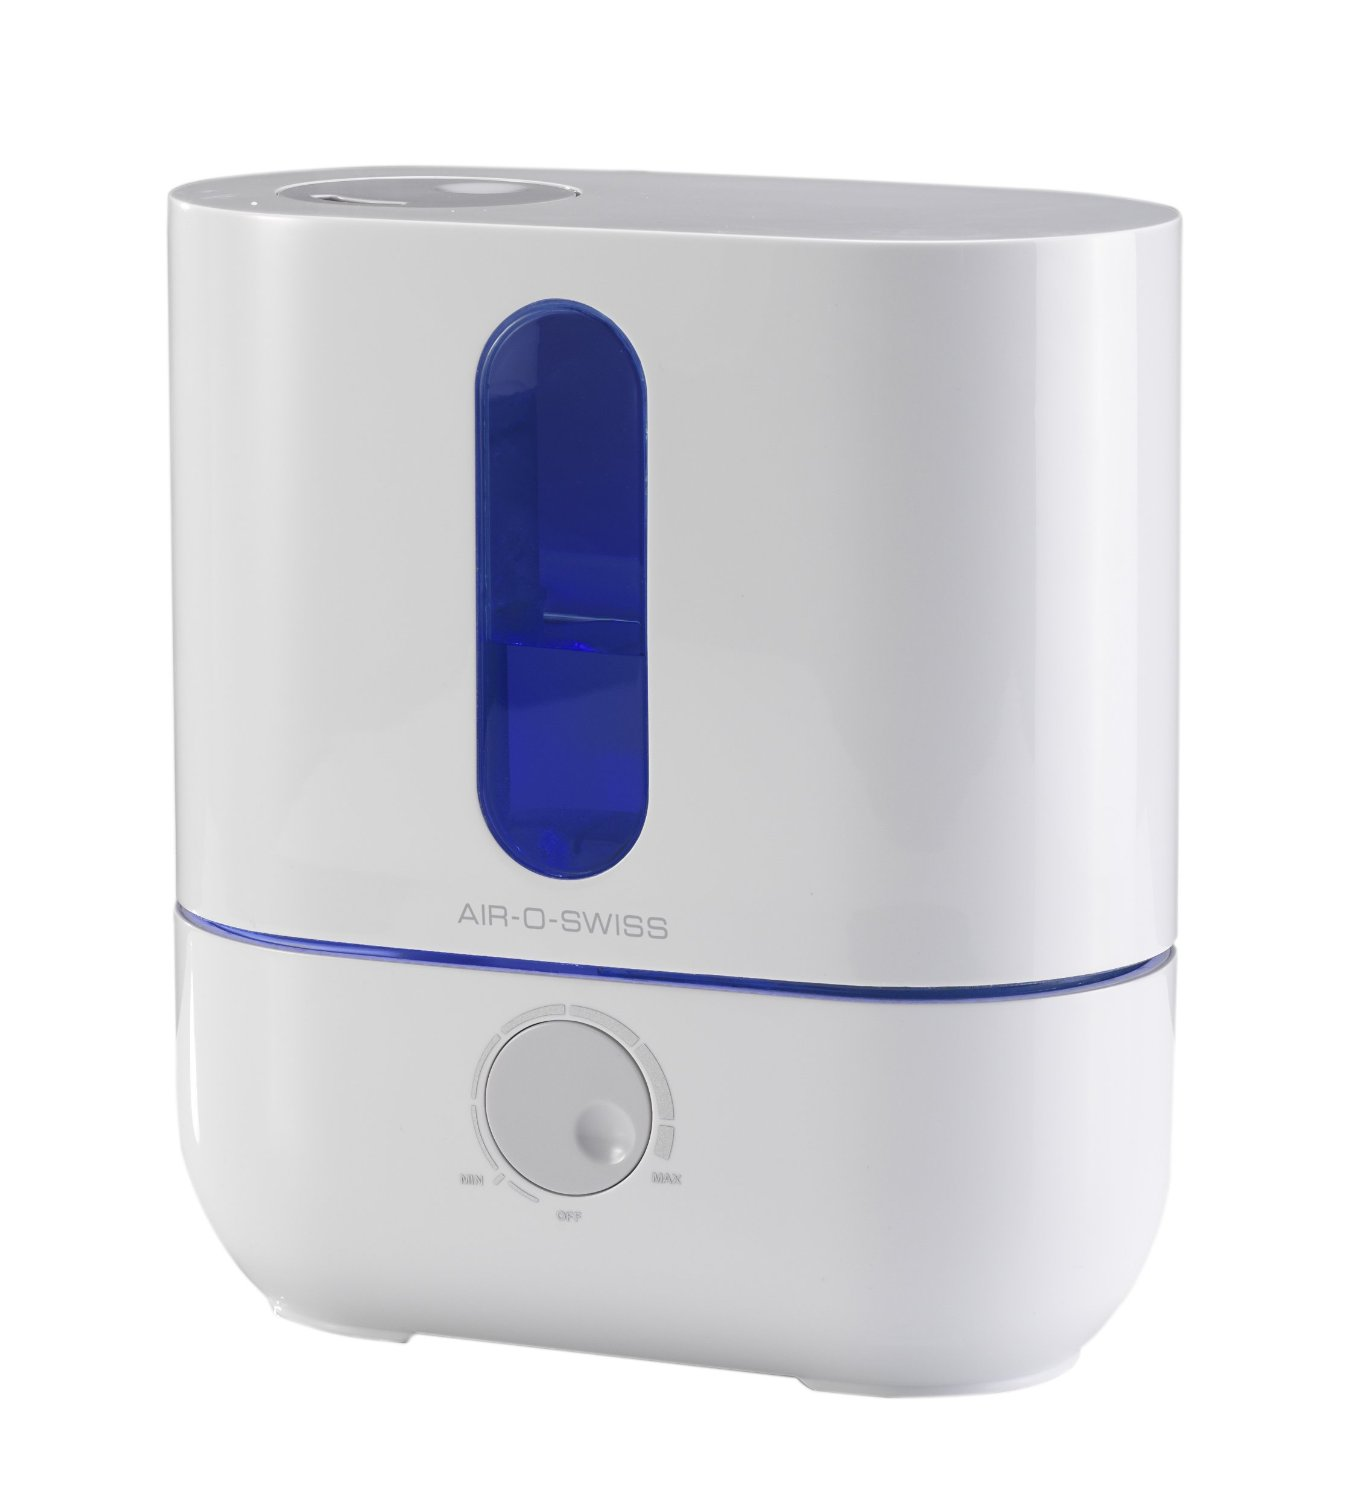 Air O Swiss Humidifier Reviews Review for 7135 7142 7144 #2422AA